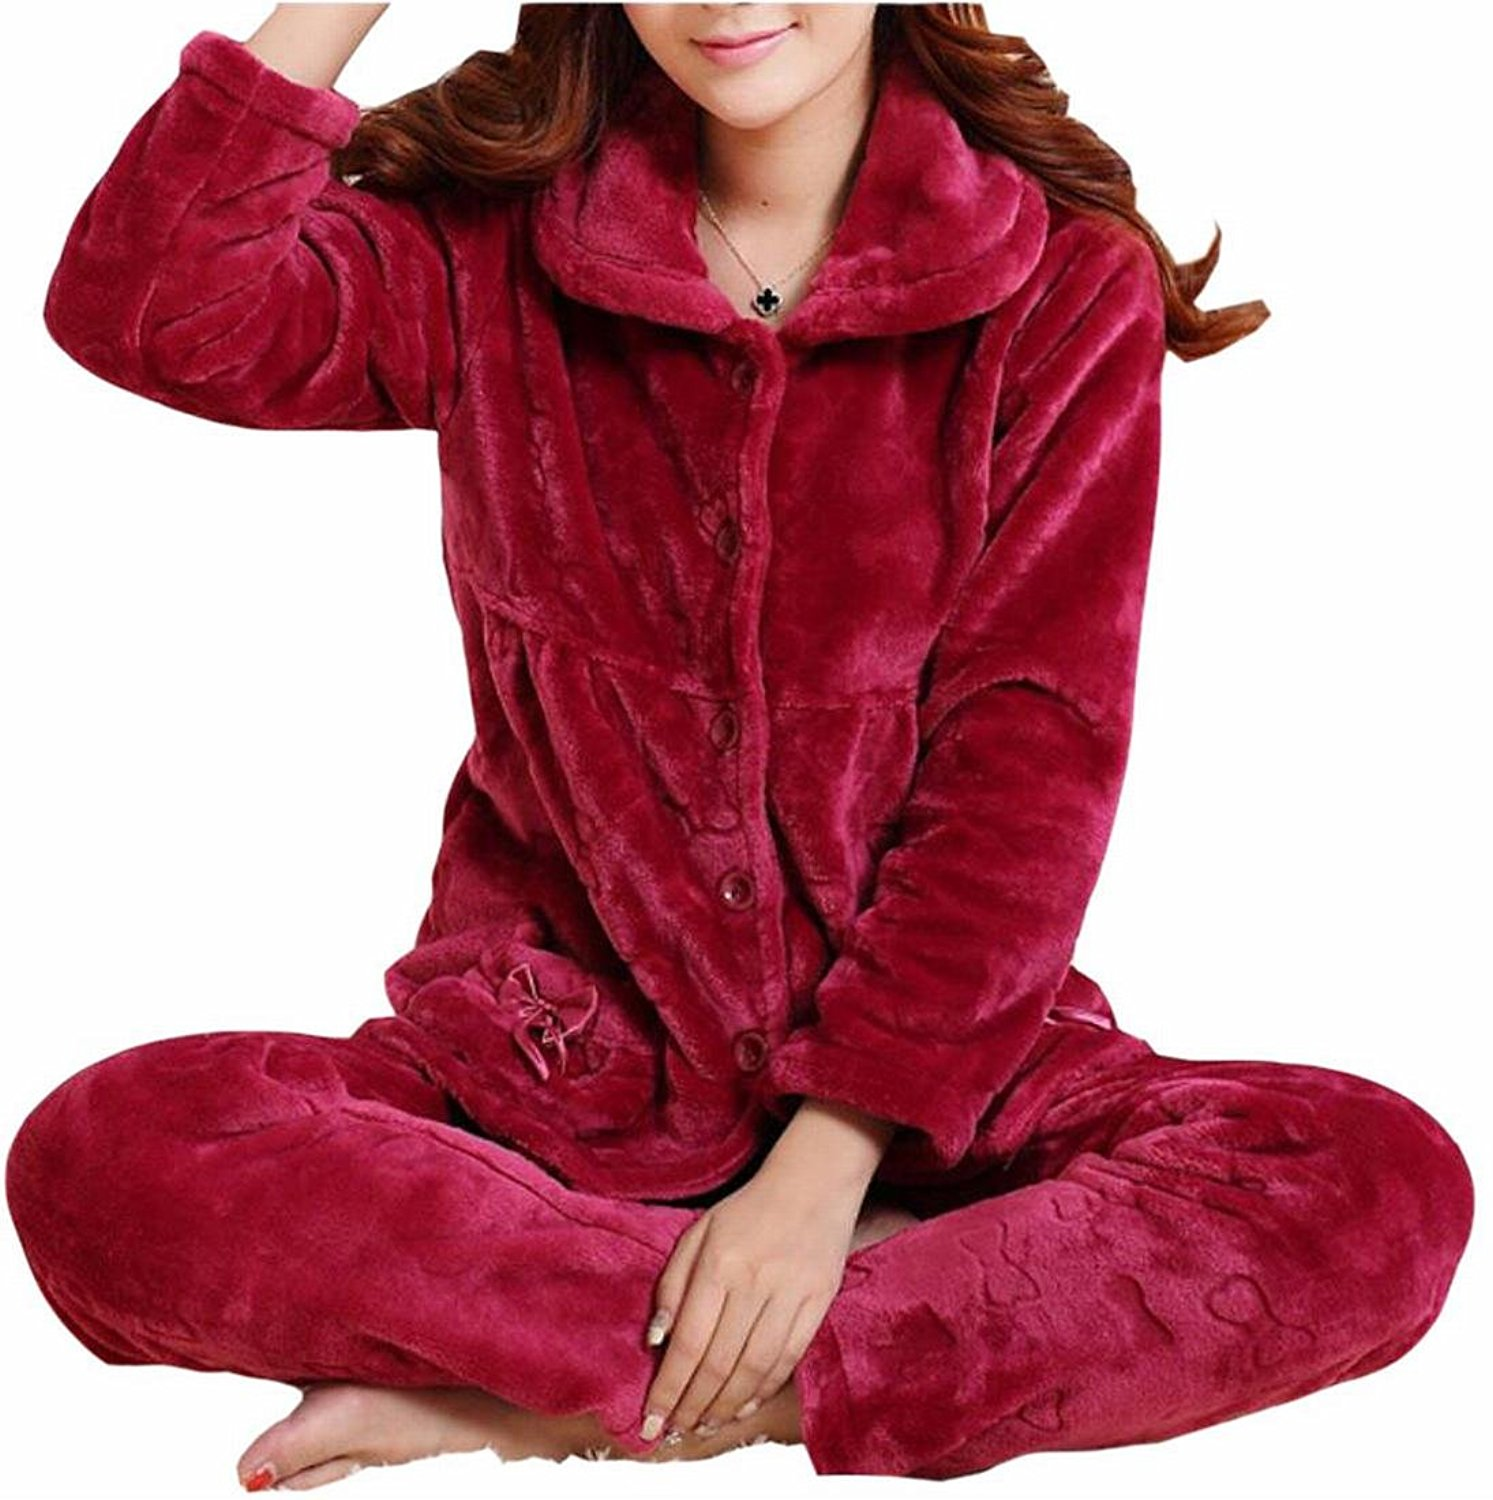 b32ca0ab92 Get Quotations · HTOOHTOOH Womens Fluffy Button-Front Flannel Loungewear  Home Pajamas Sets